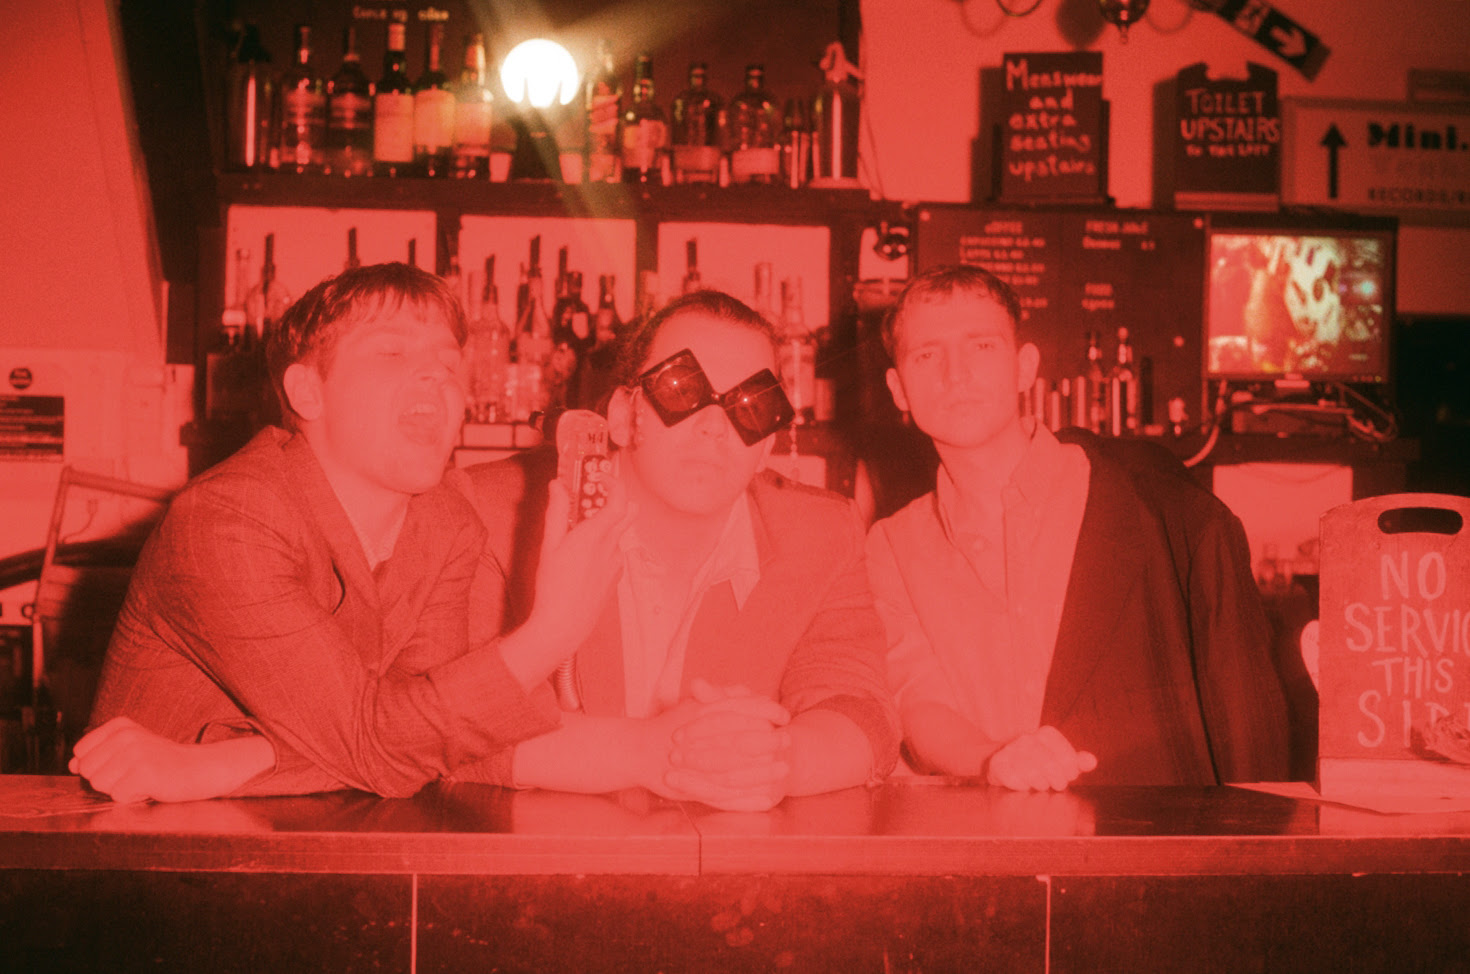 Artist of the day 19/09: Liverpool's Trudy And The Romance are impossible to categorise